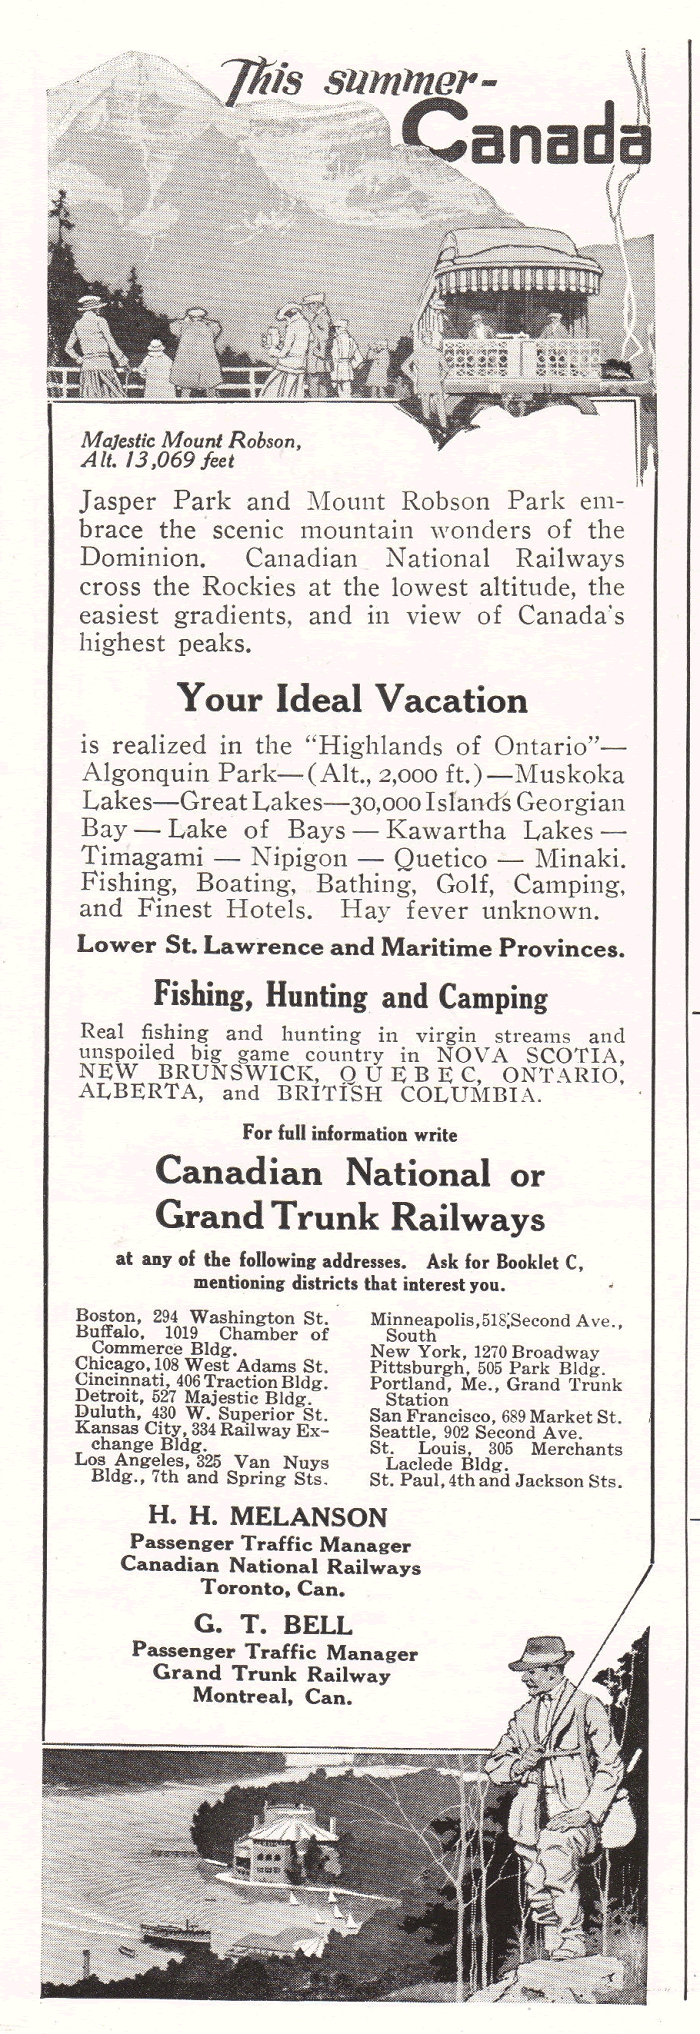 Canadian National and Grand Trunk Railways Advertisement from 1922